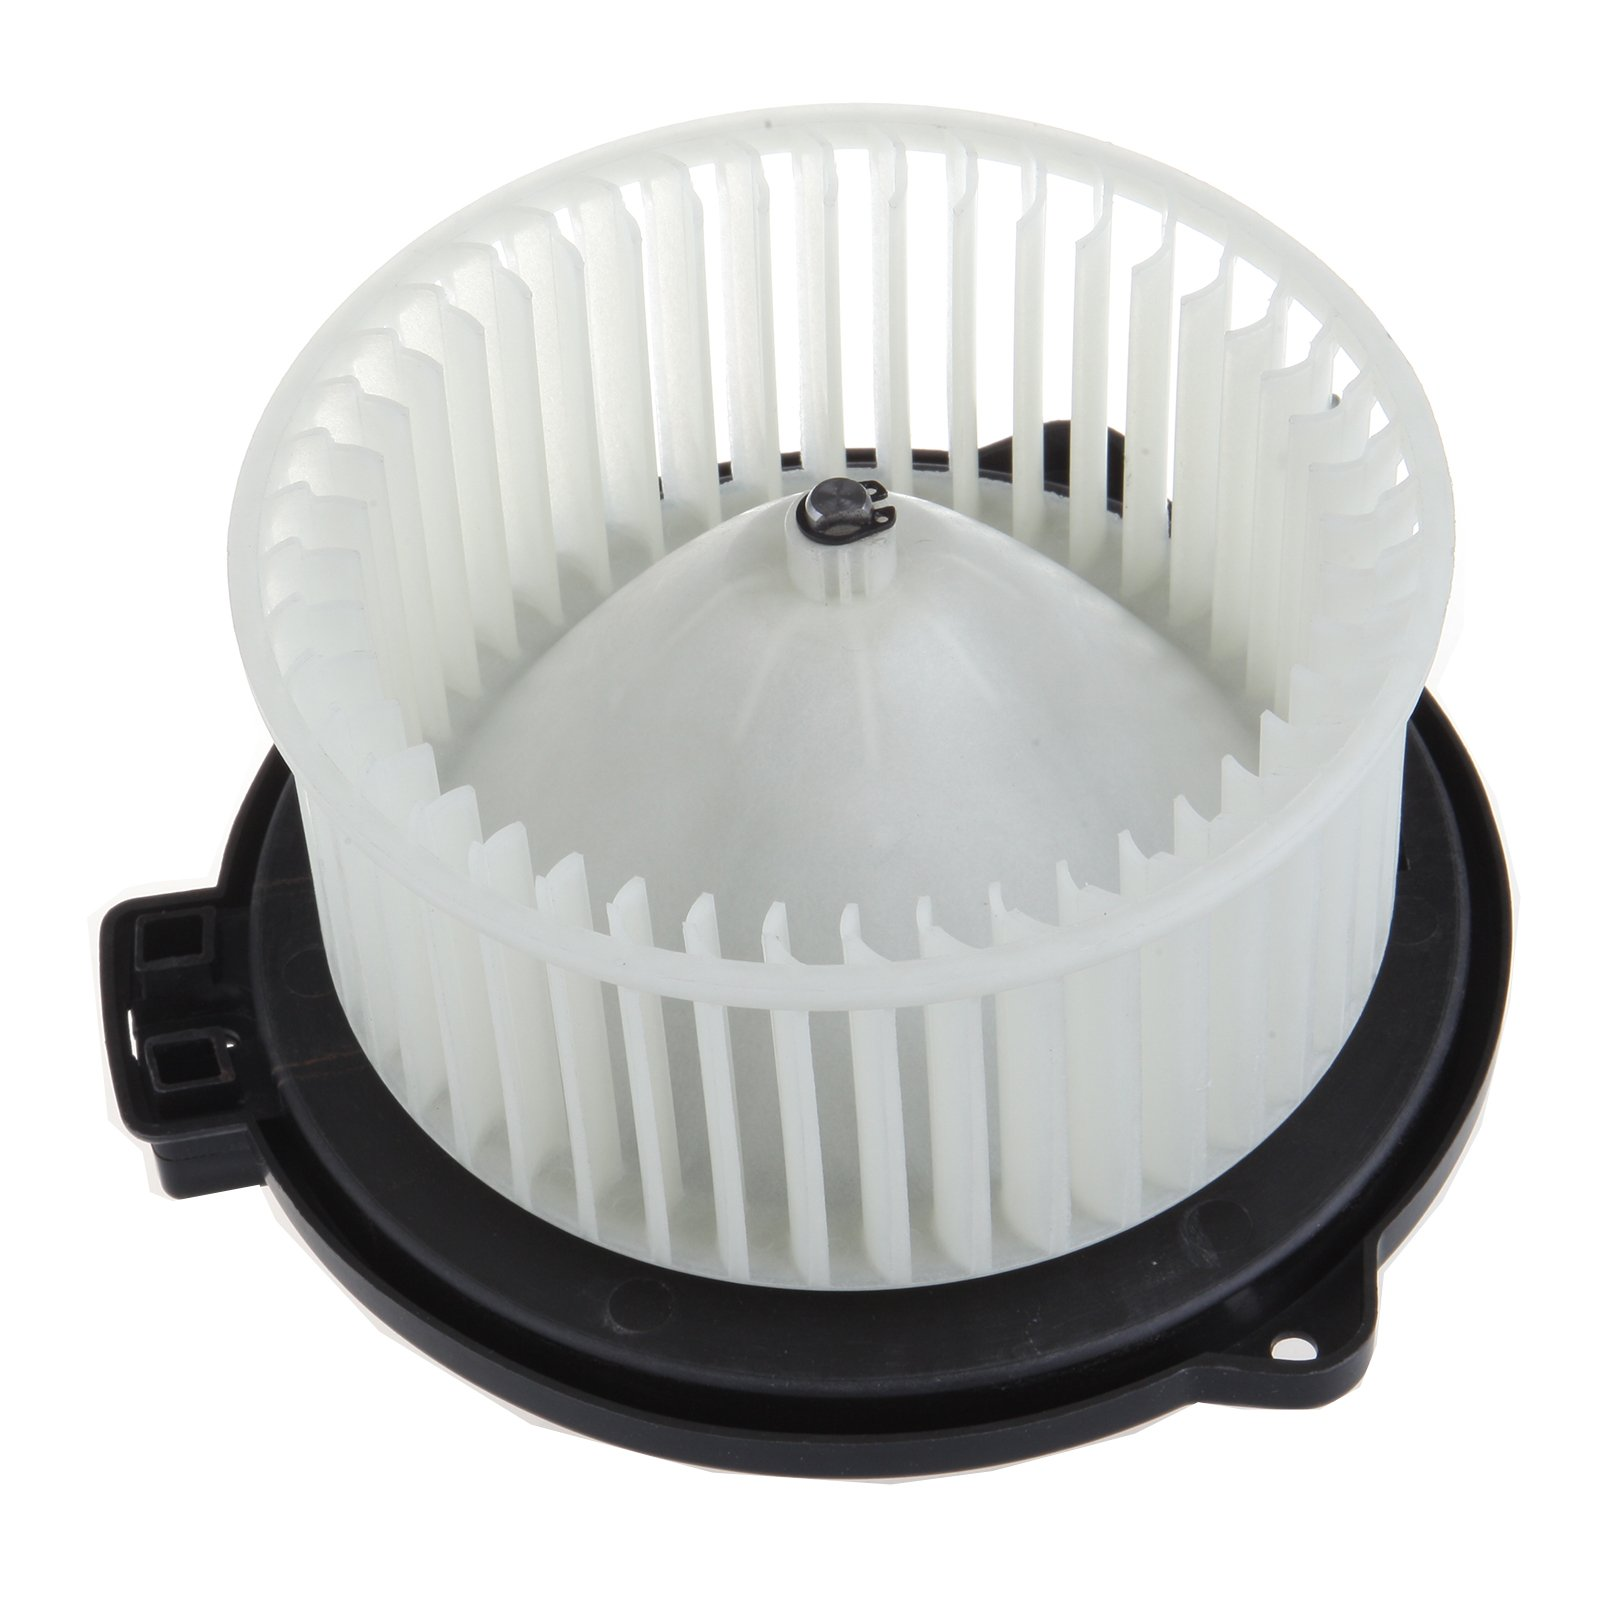 HVAC plastic Heater Blower Motor ABS w/Fan Cage ECCPP fit for 2001-2006 Acura MDX /1998-2002 Honda Accord /1999-2004 Honda Odyssey /2003-2008 Honda Pilot